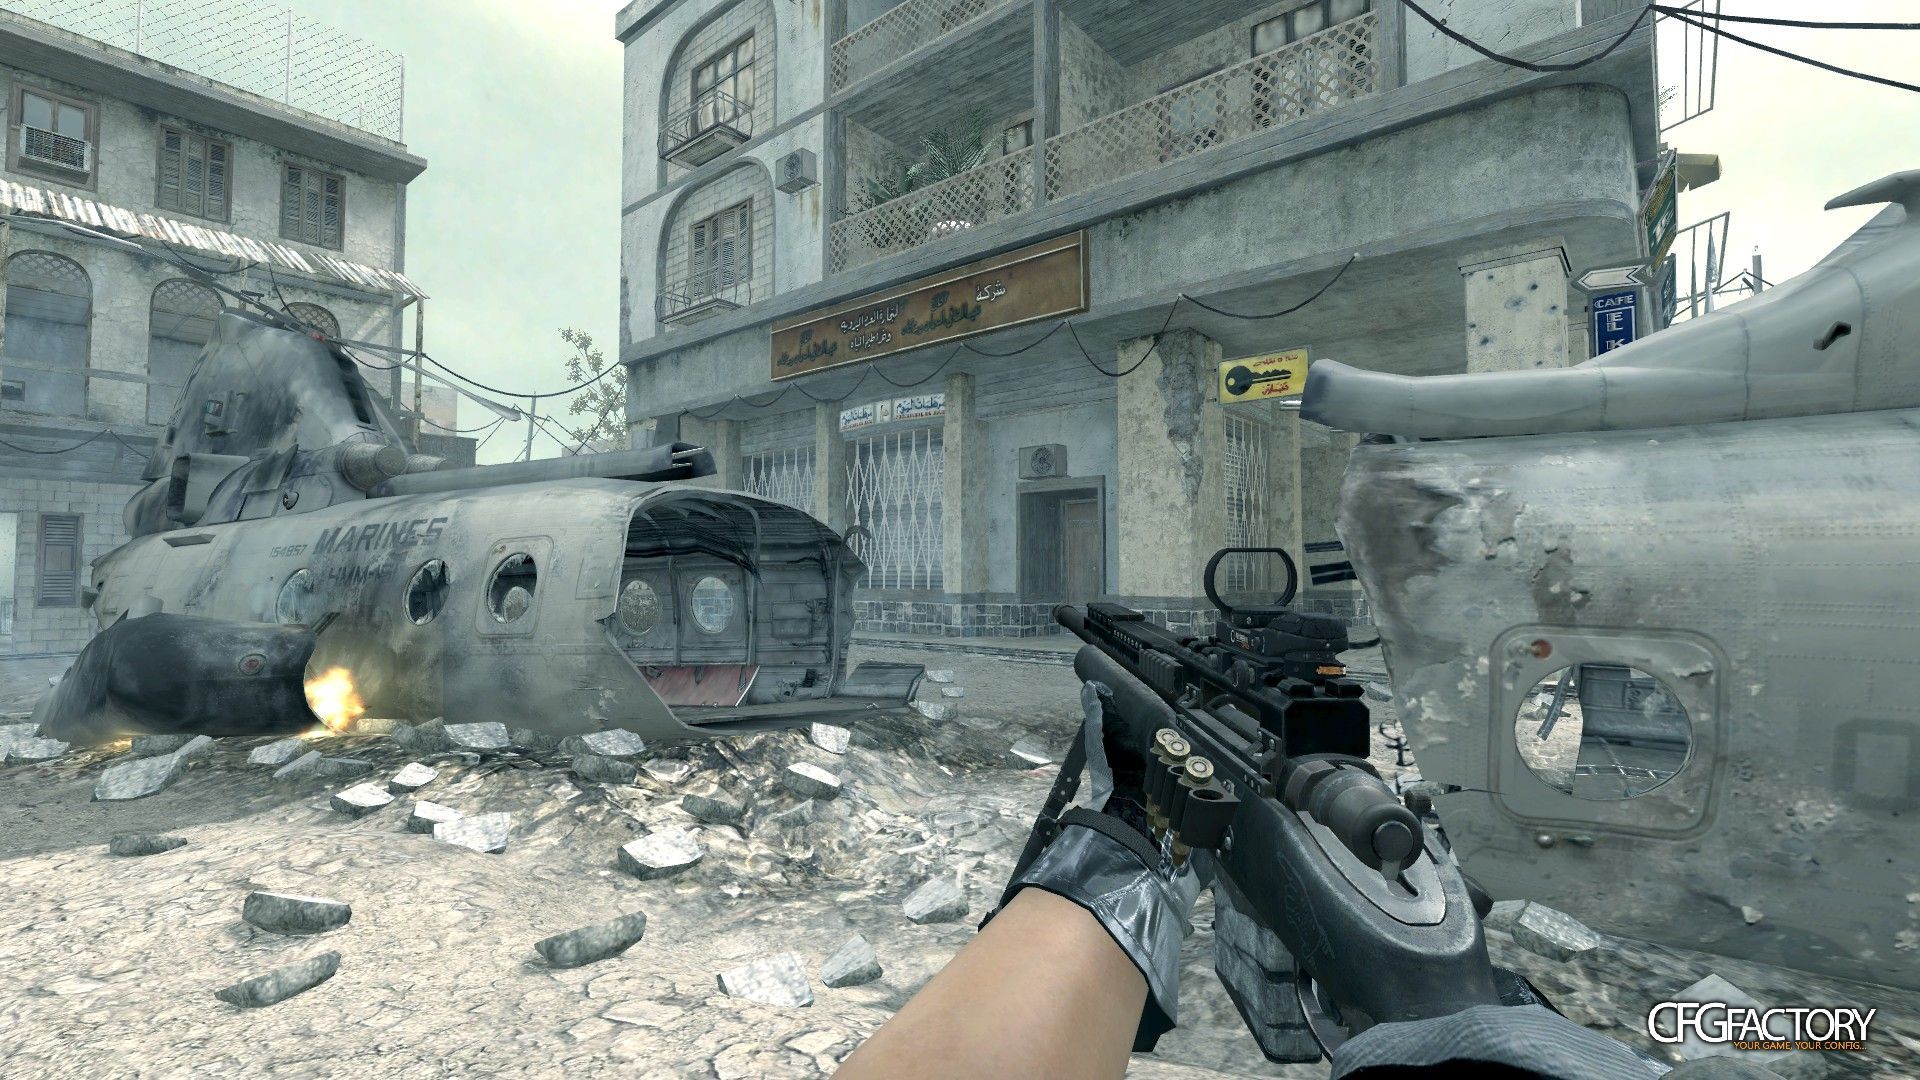 cod4, custom models, ghosts usr, convictiondr